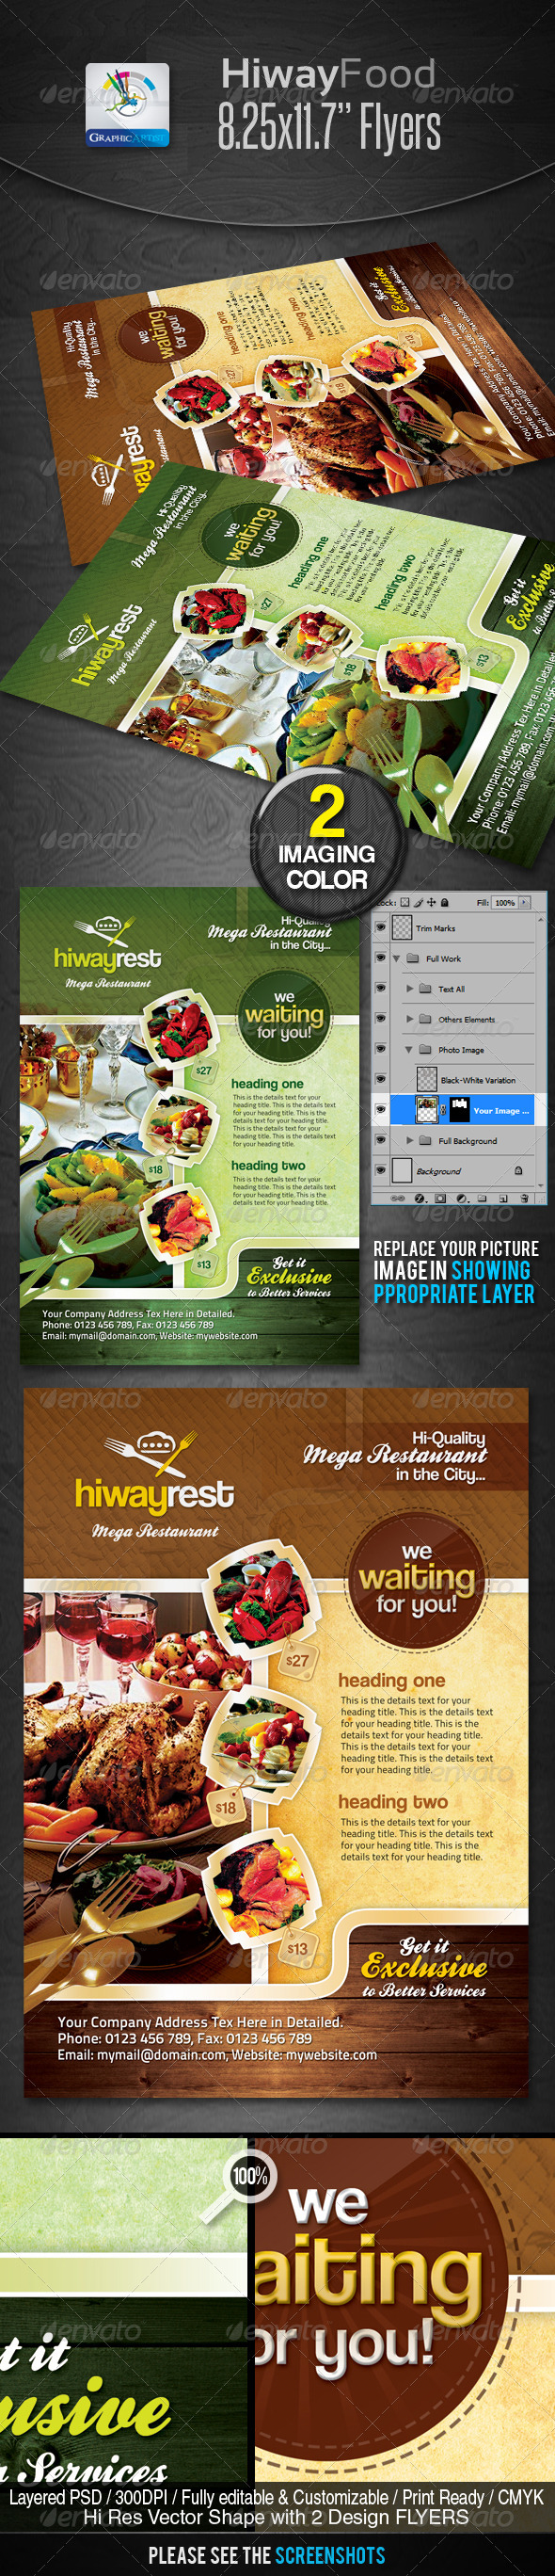 Hiway Modern Foods Flyers - Restaurant Flyers